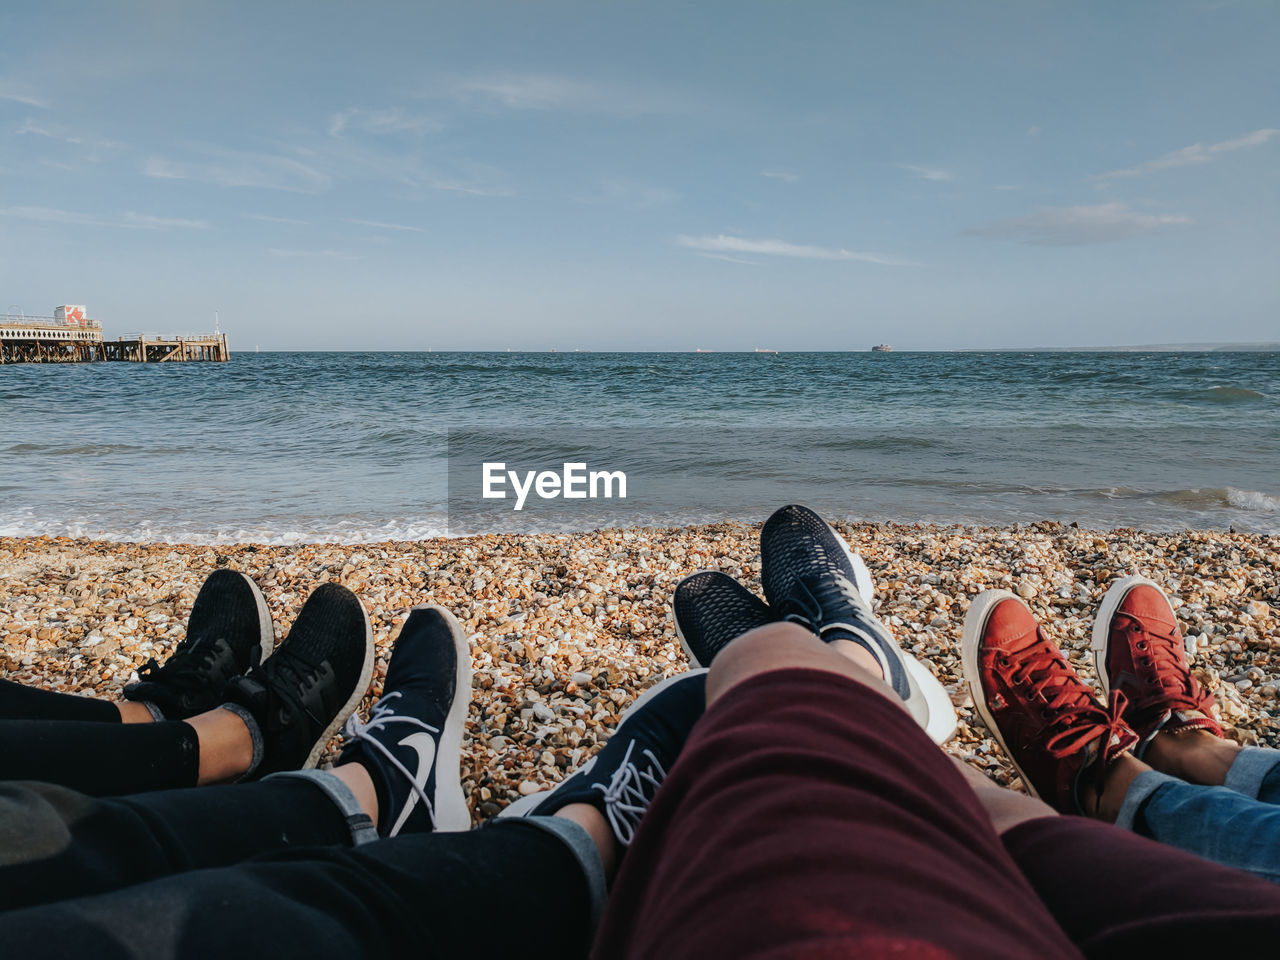 sea, water, sky, beach, horizon over water, low section, horizon, human leg, land, real people, scenics - nature, personal perspective, beauty in nature, shoe, body part, human body part, nature, lifestyles, leisure activity, outdoors